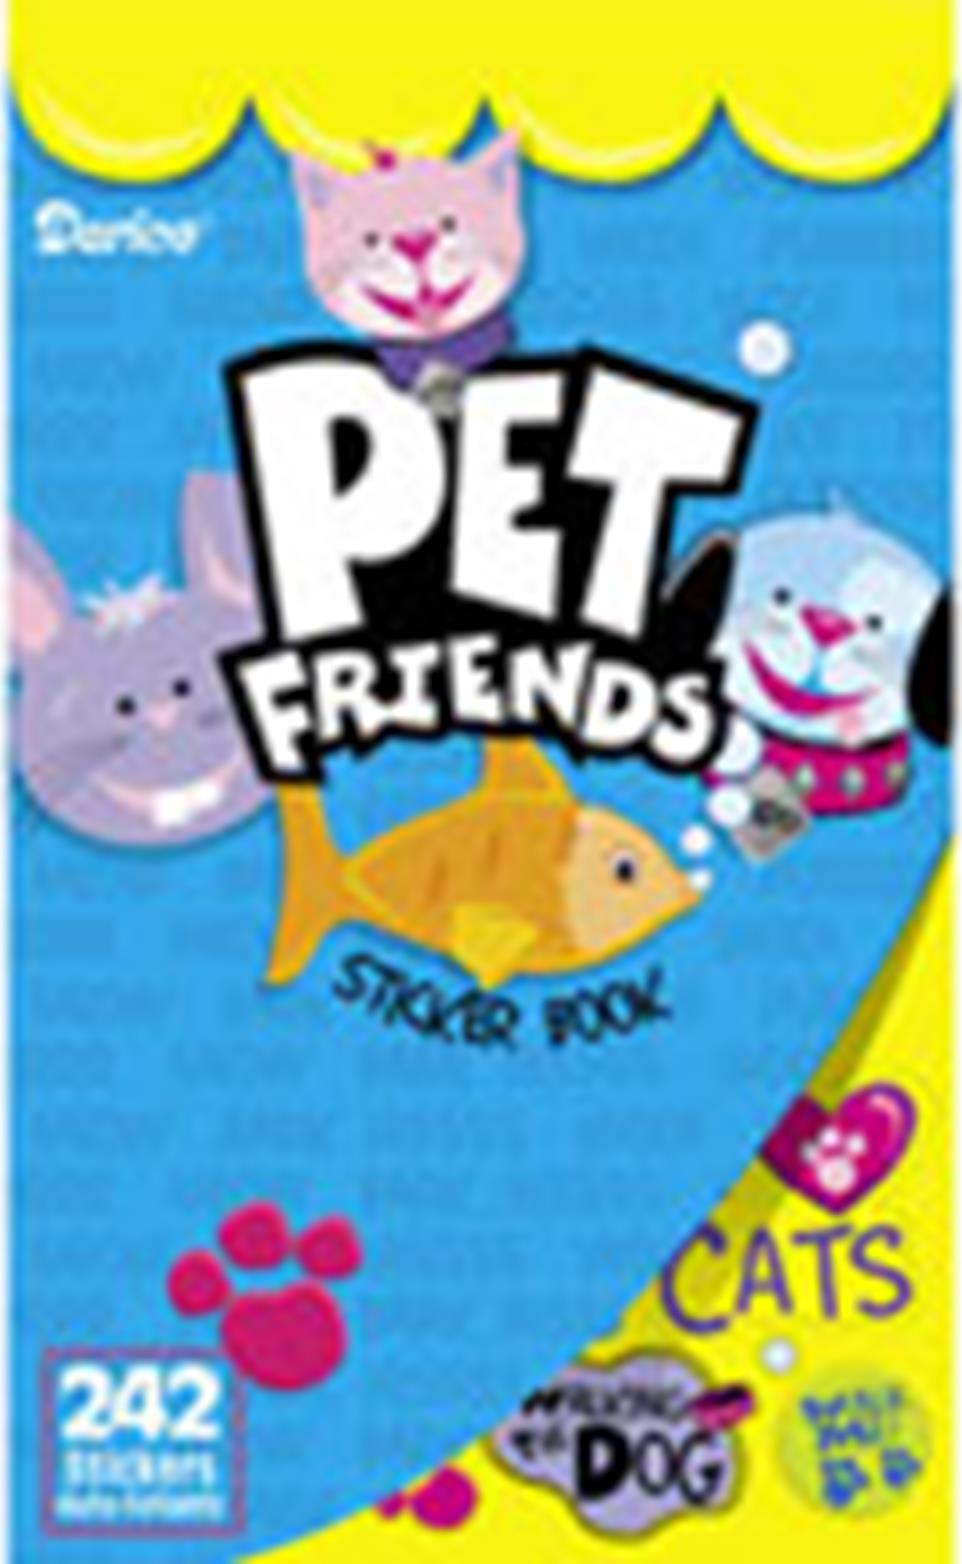 Pet Friends Stickers